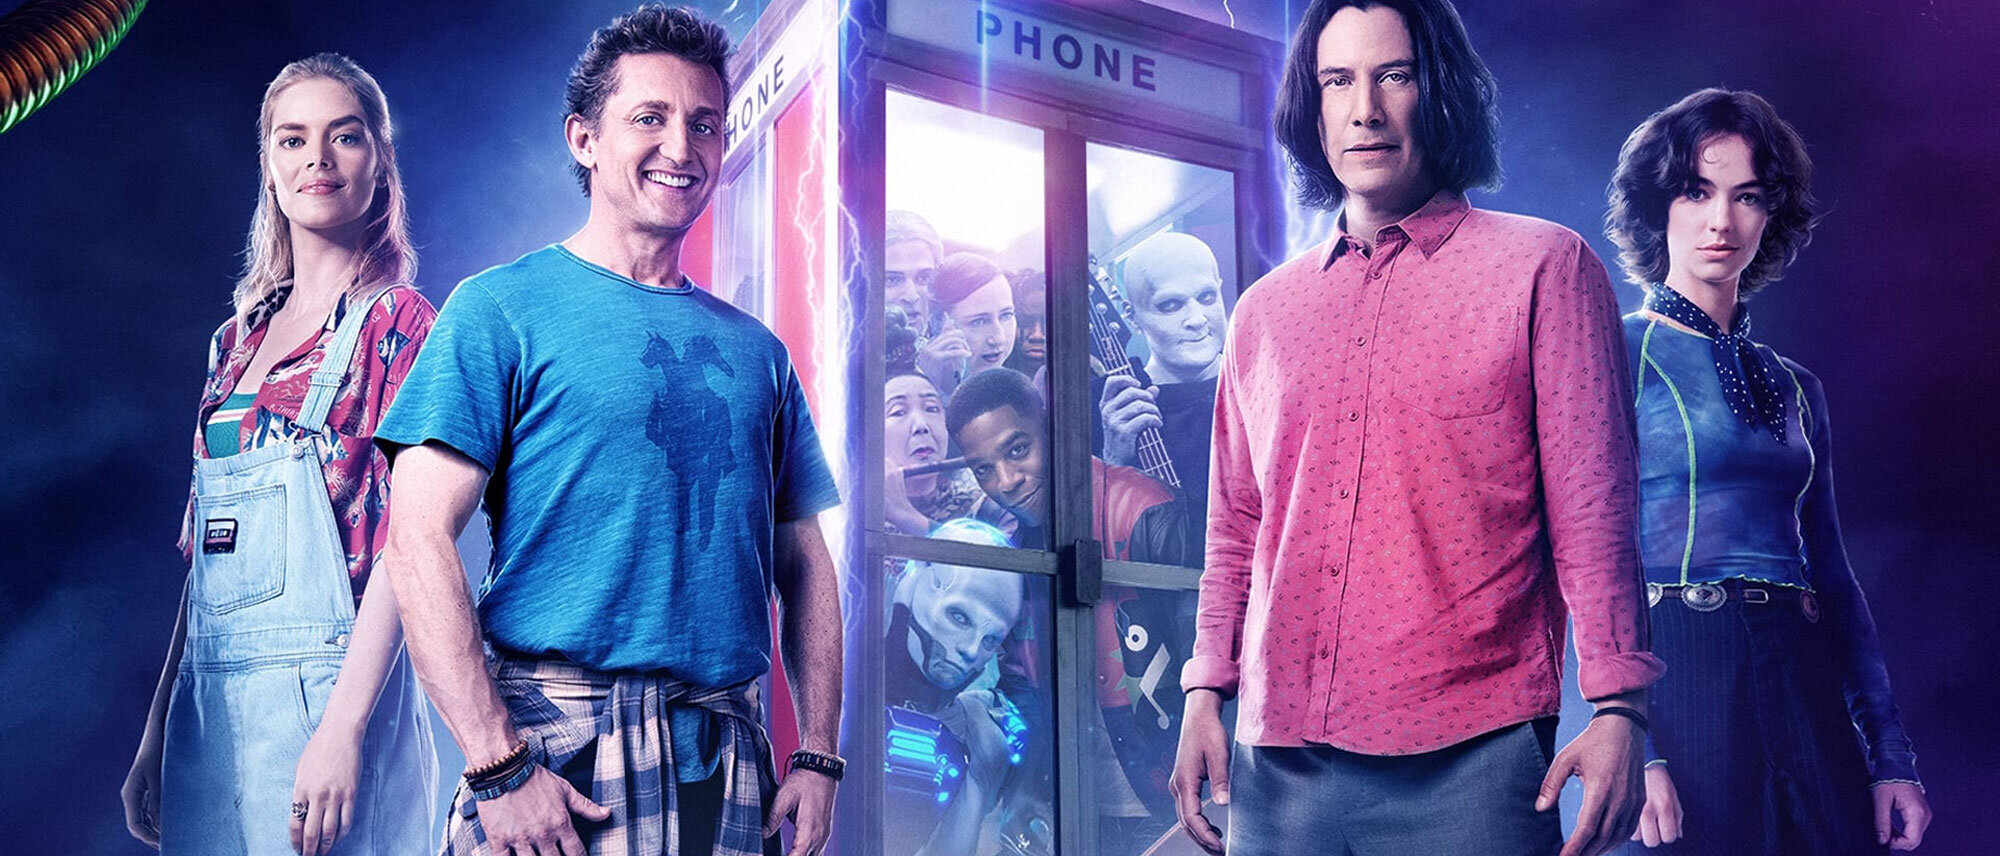 Bill And Ted Face The Music Review - A Comedy Sequel With More Thought Than Most | Small Screen